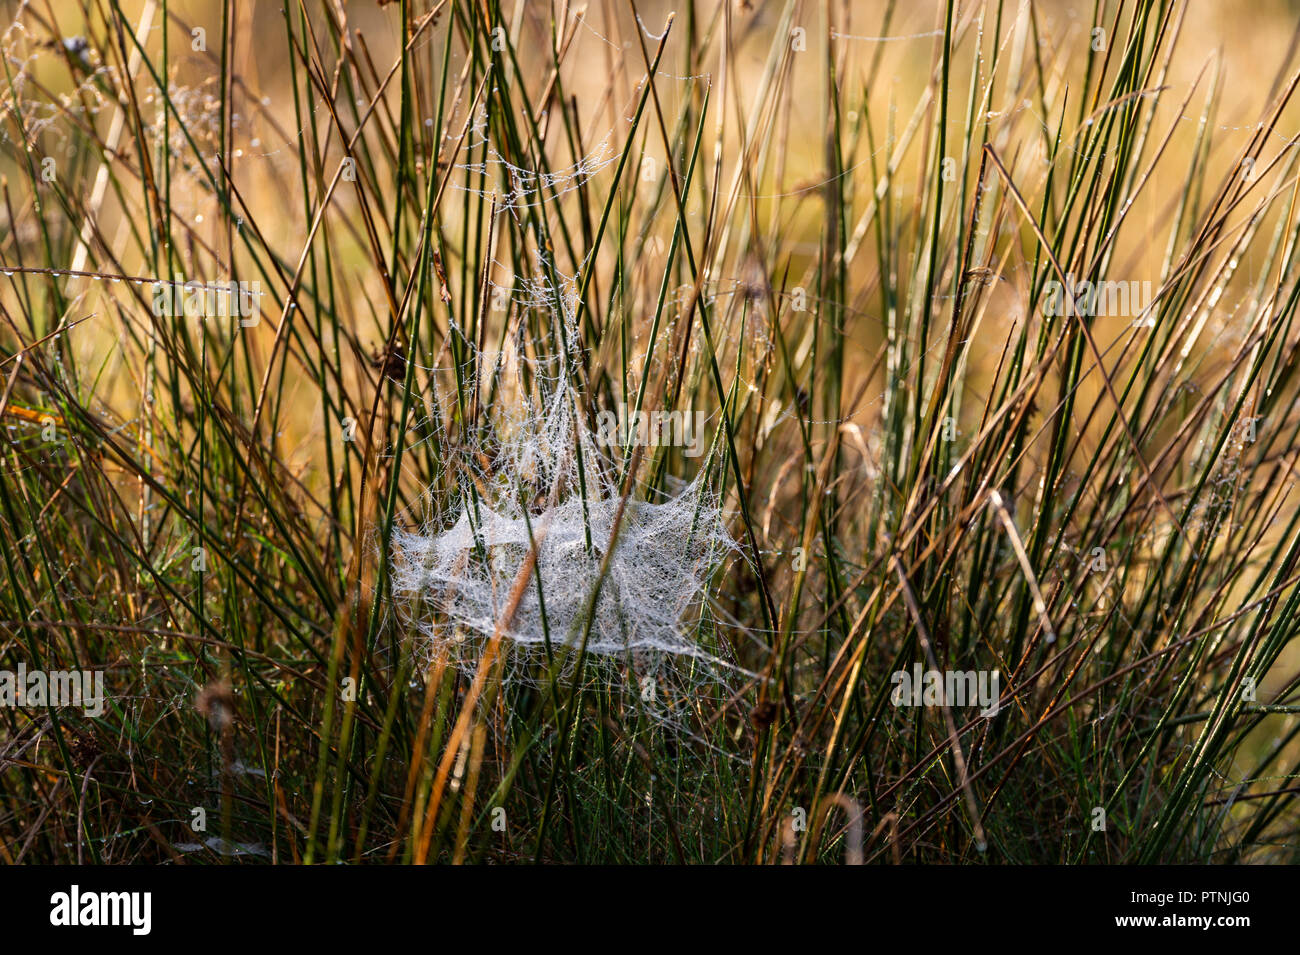 Spiders webs in-between tall grasses - Stock Image